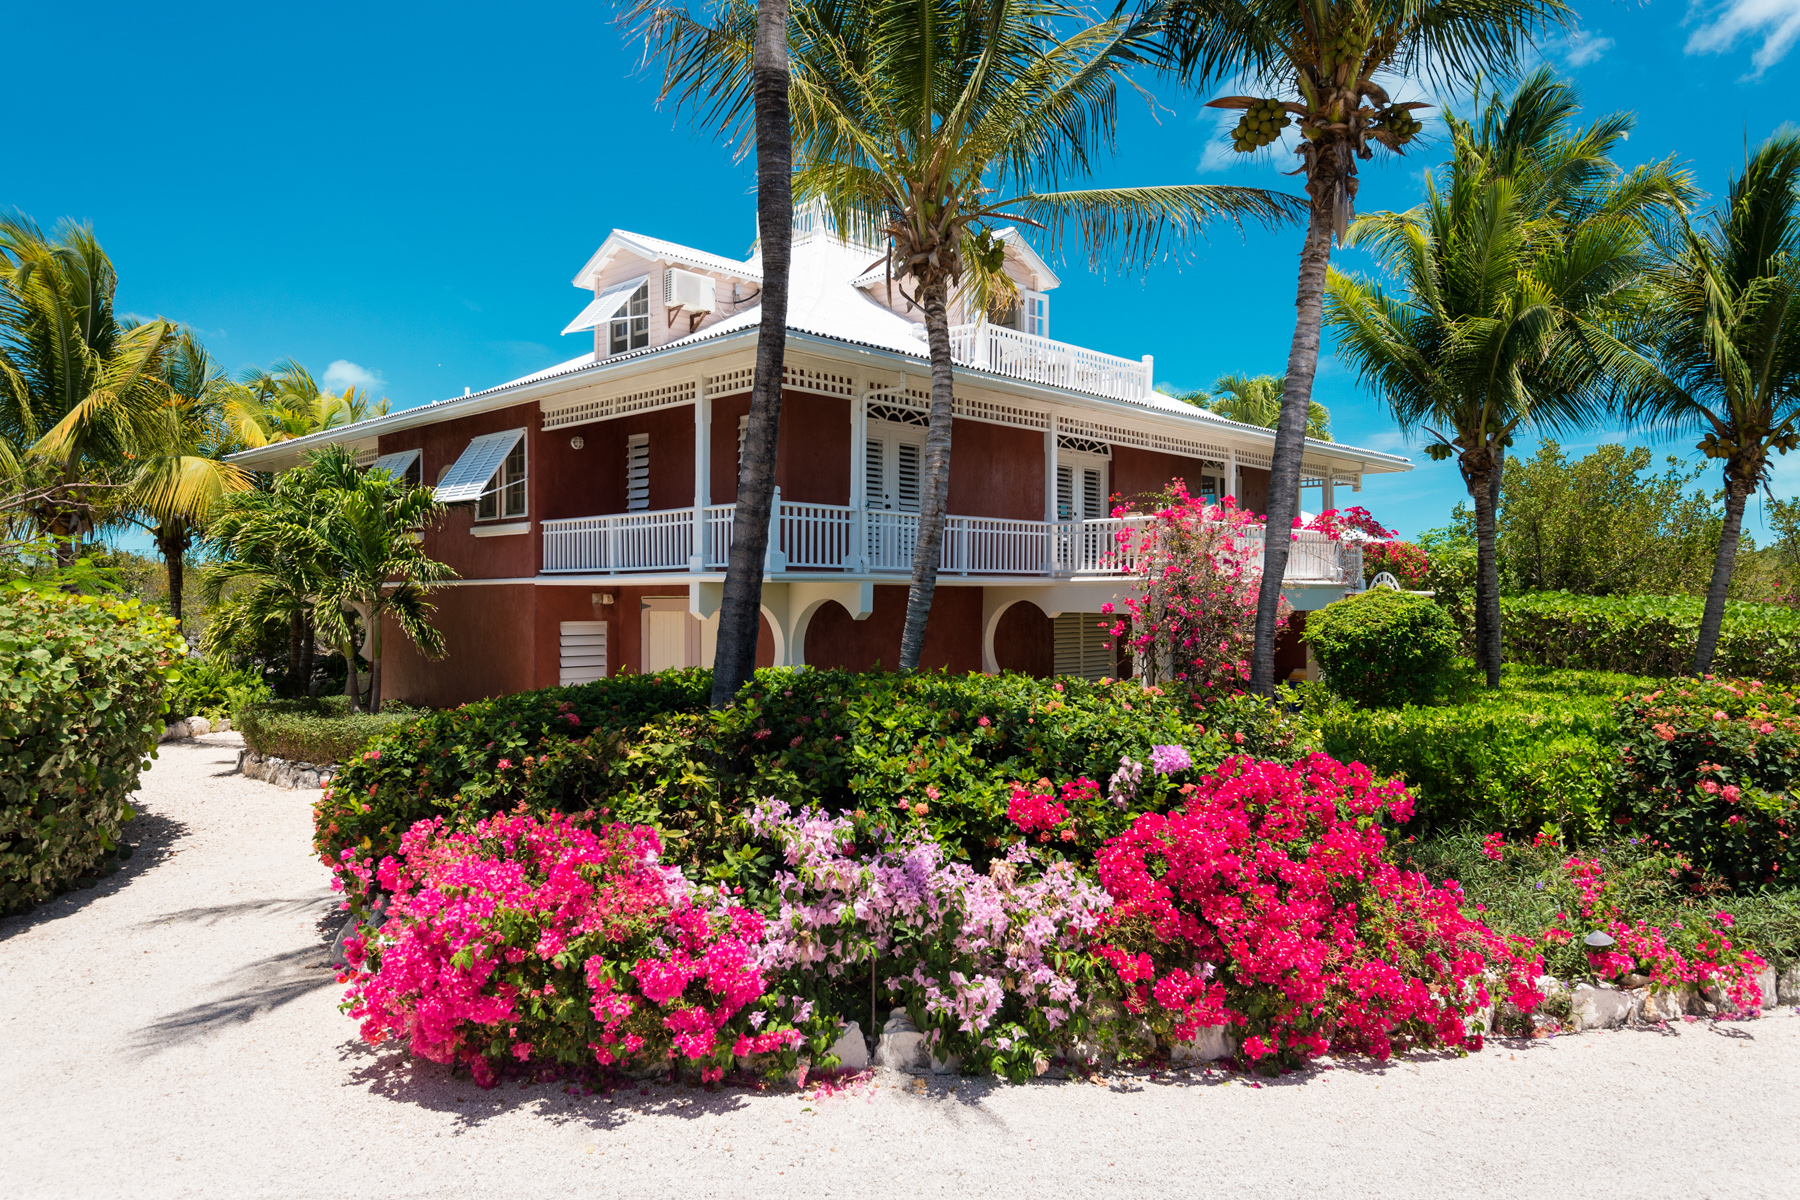 Single Family Home for Sale at Etoile De Mer Taylor Bay, Providenciales Turks And Caicos Islands